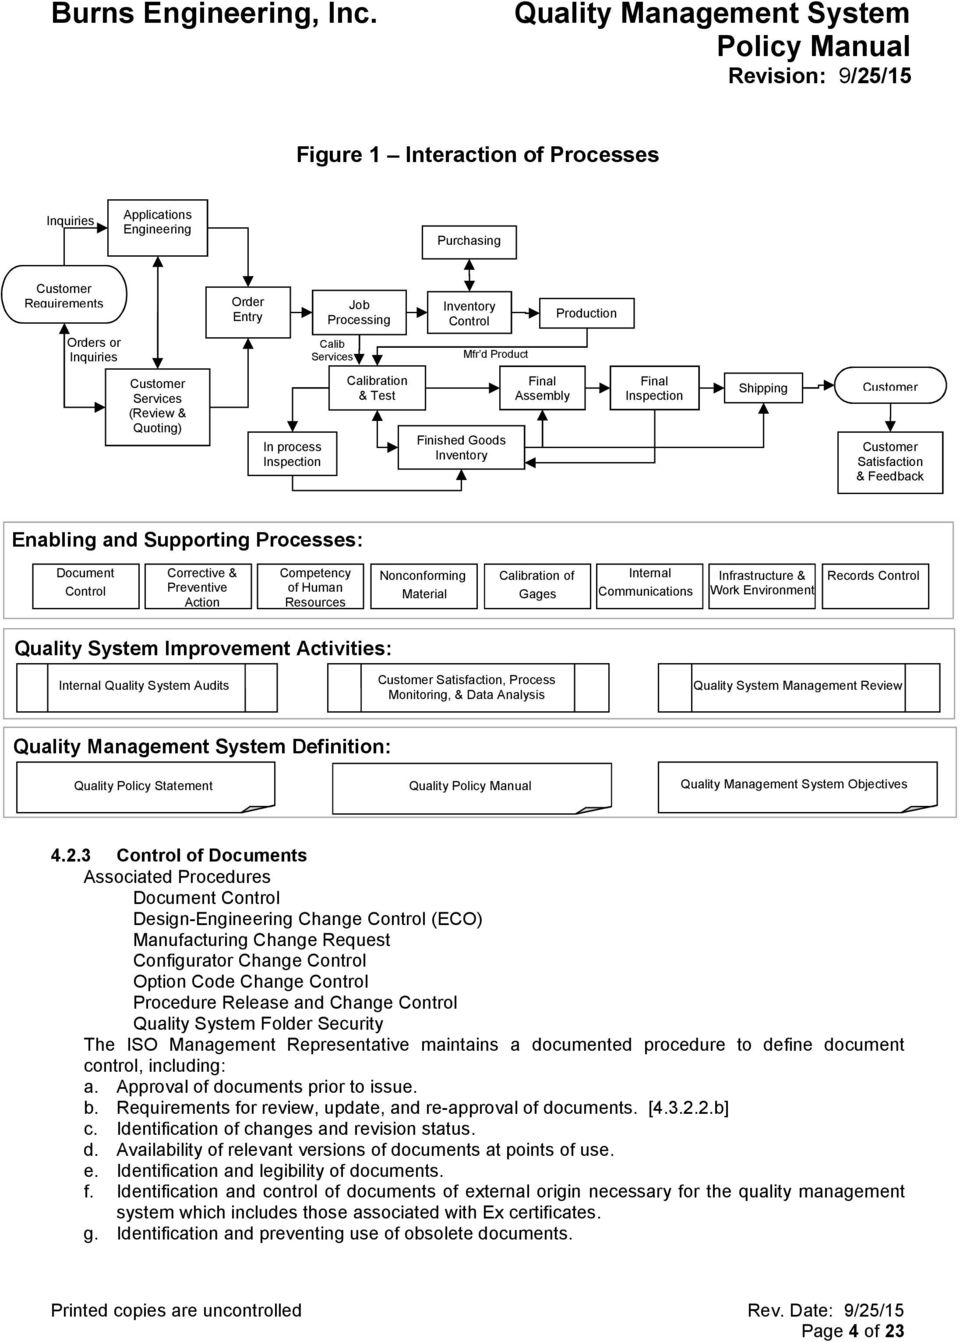 Enabling and Supporting Processes: Document Control Corrective & Preventive Action Competency of Human Resources Nonconforming Material Calibration of Gages Internal Communications Infrastructure &